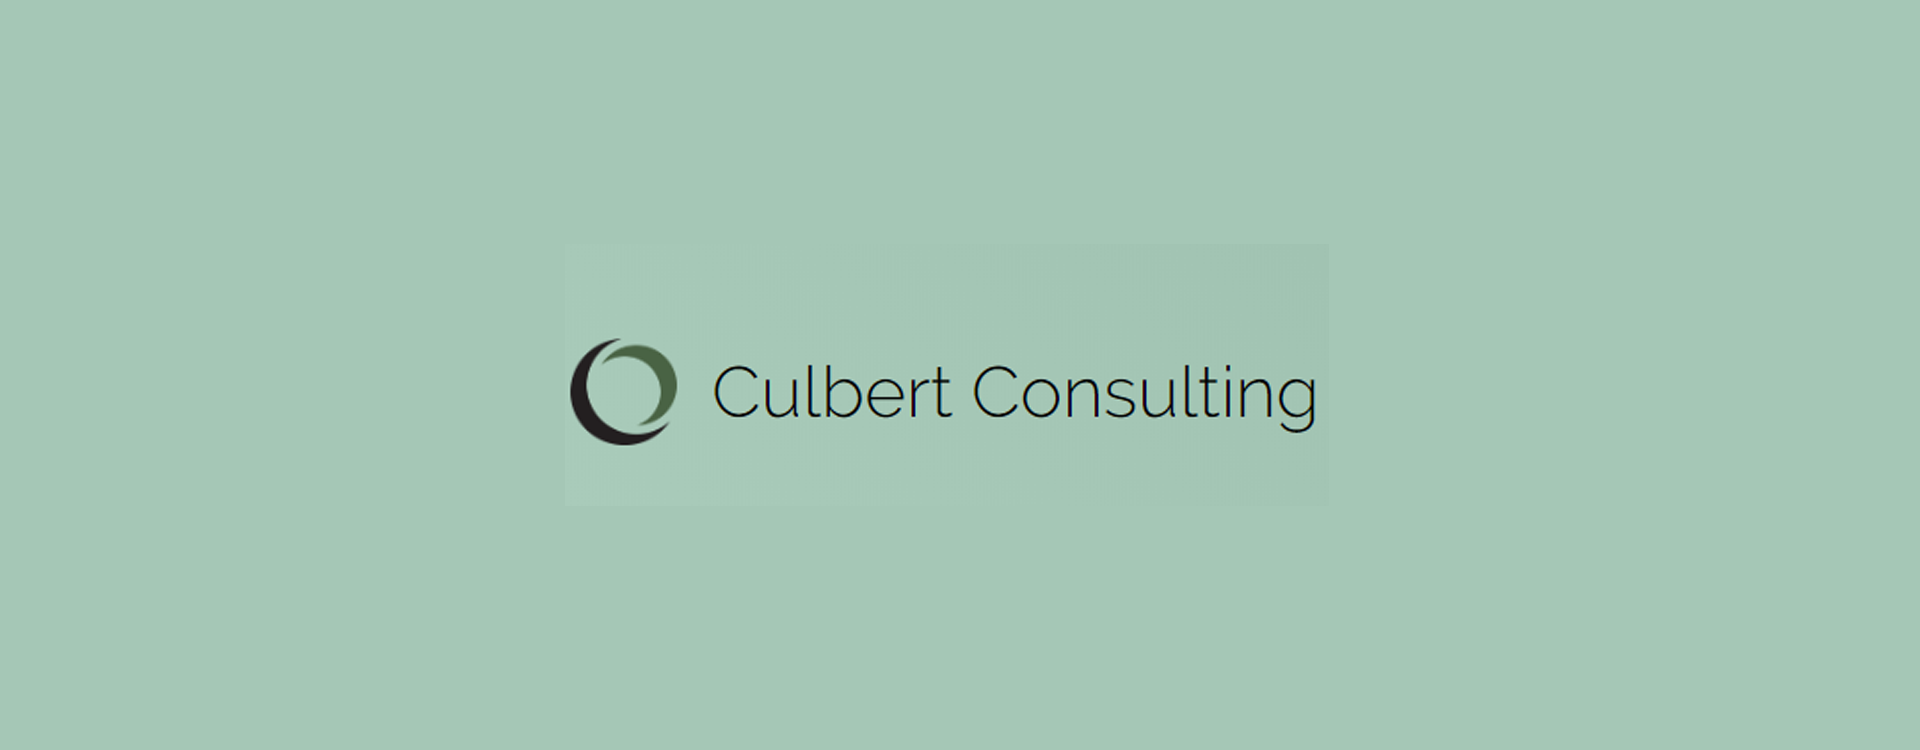 Culbert Consulting